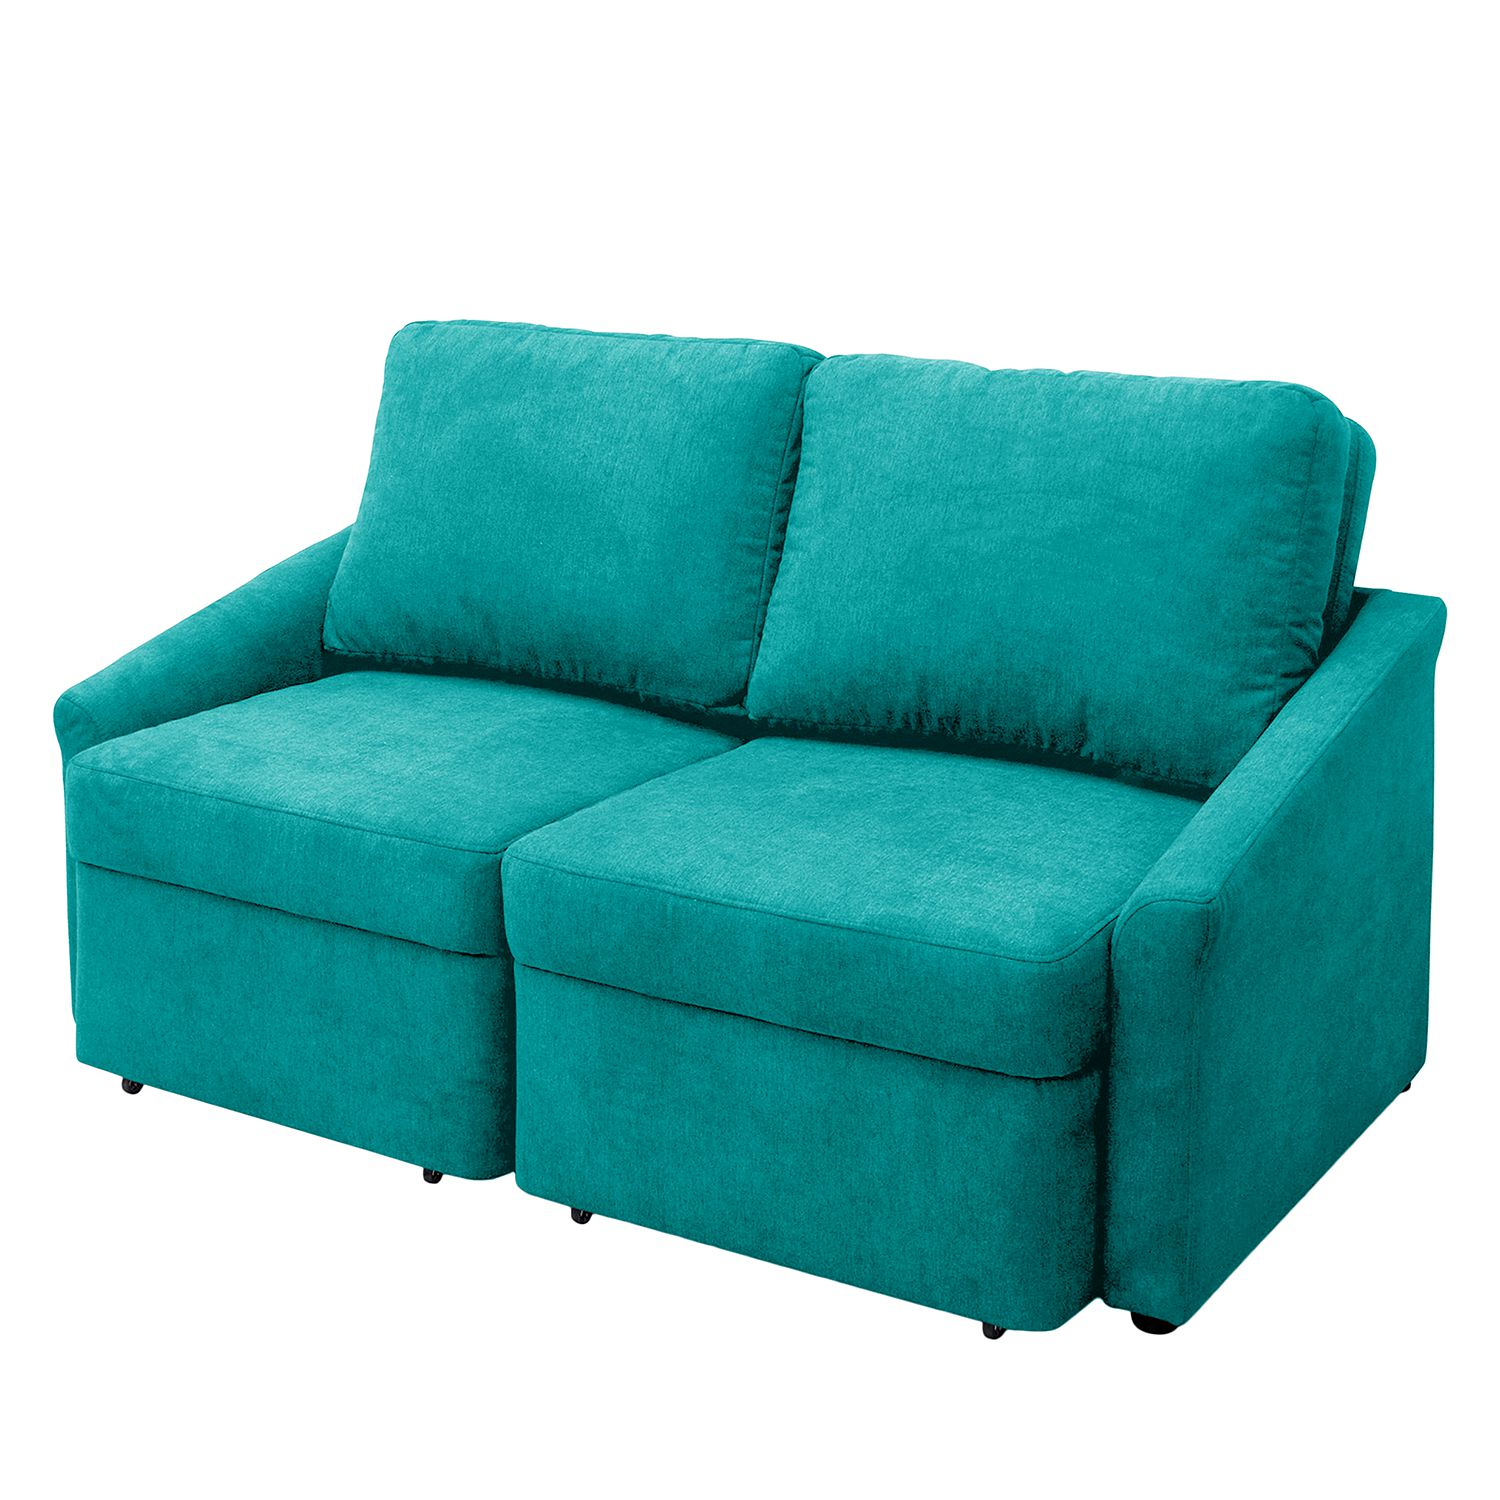 Canapé convertible Befasy Tissu - Turquoise, Fredriks